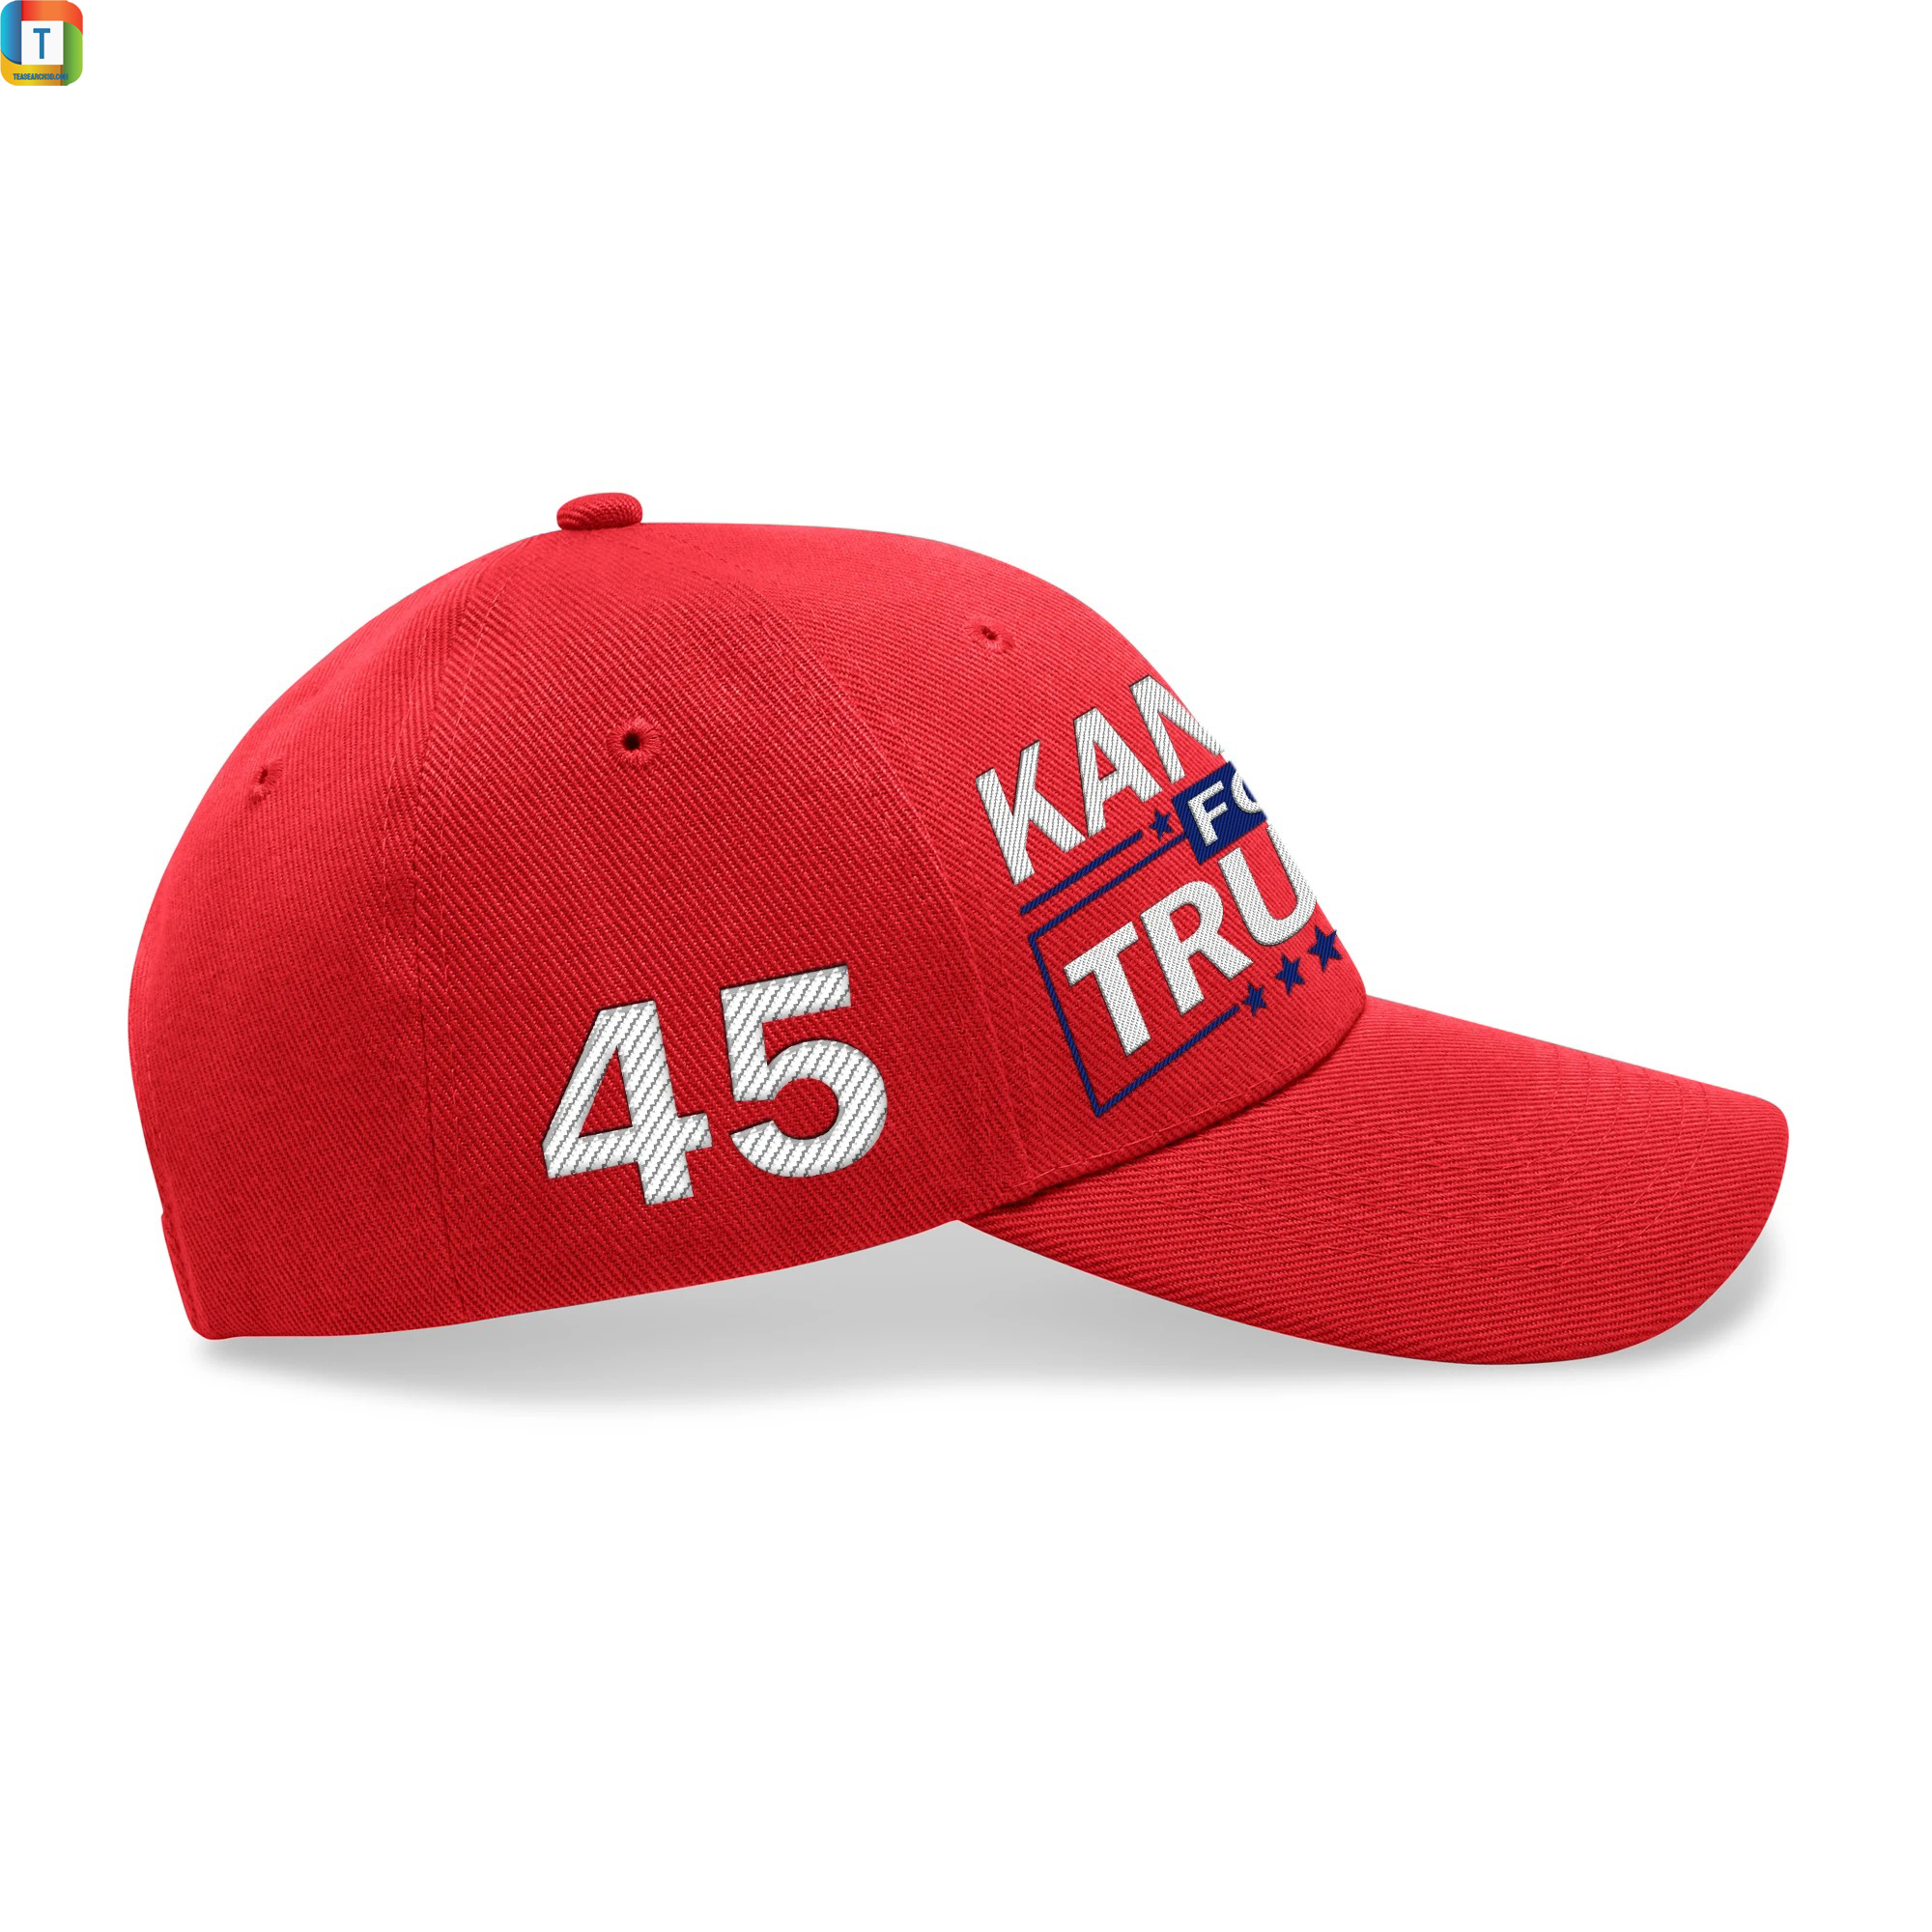 Kansas For Trump Embroidered Hat 3